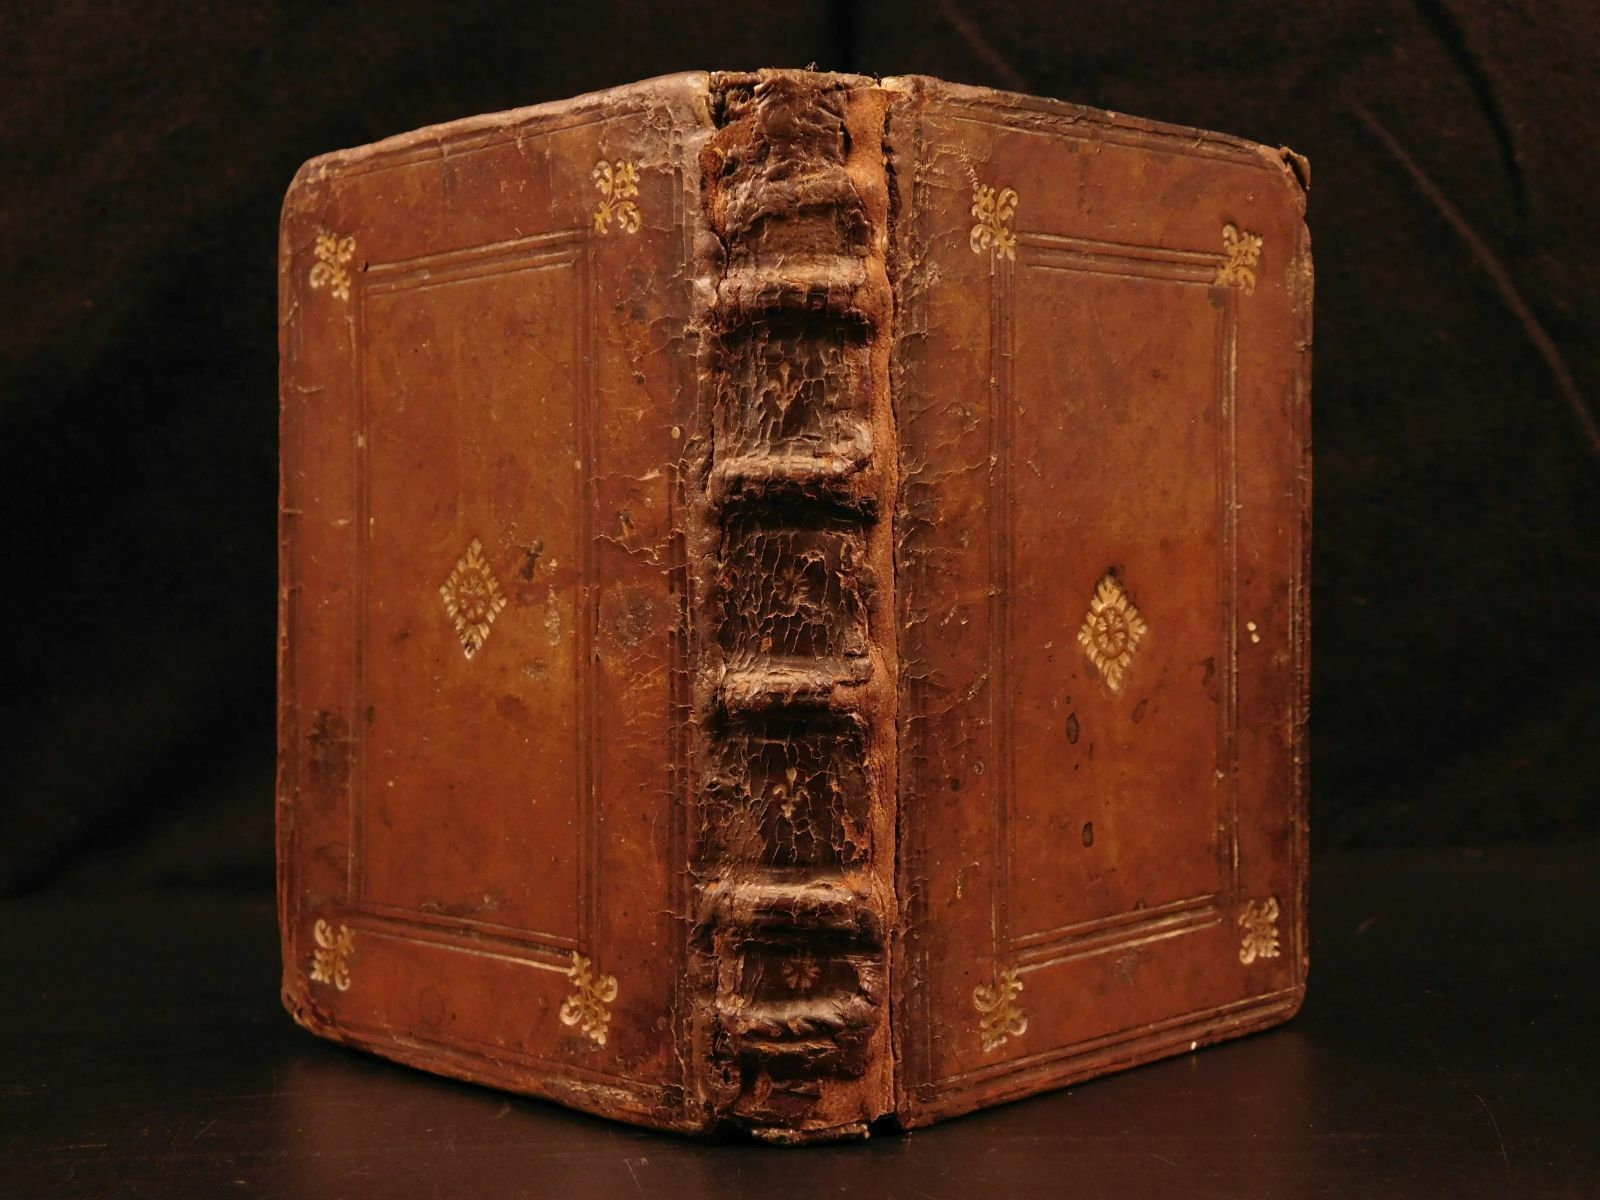 viaLibri ~ Rare Books from 1545 - Page 2